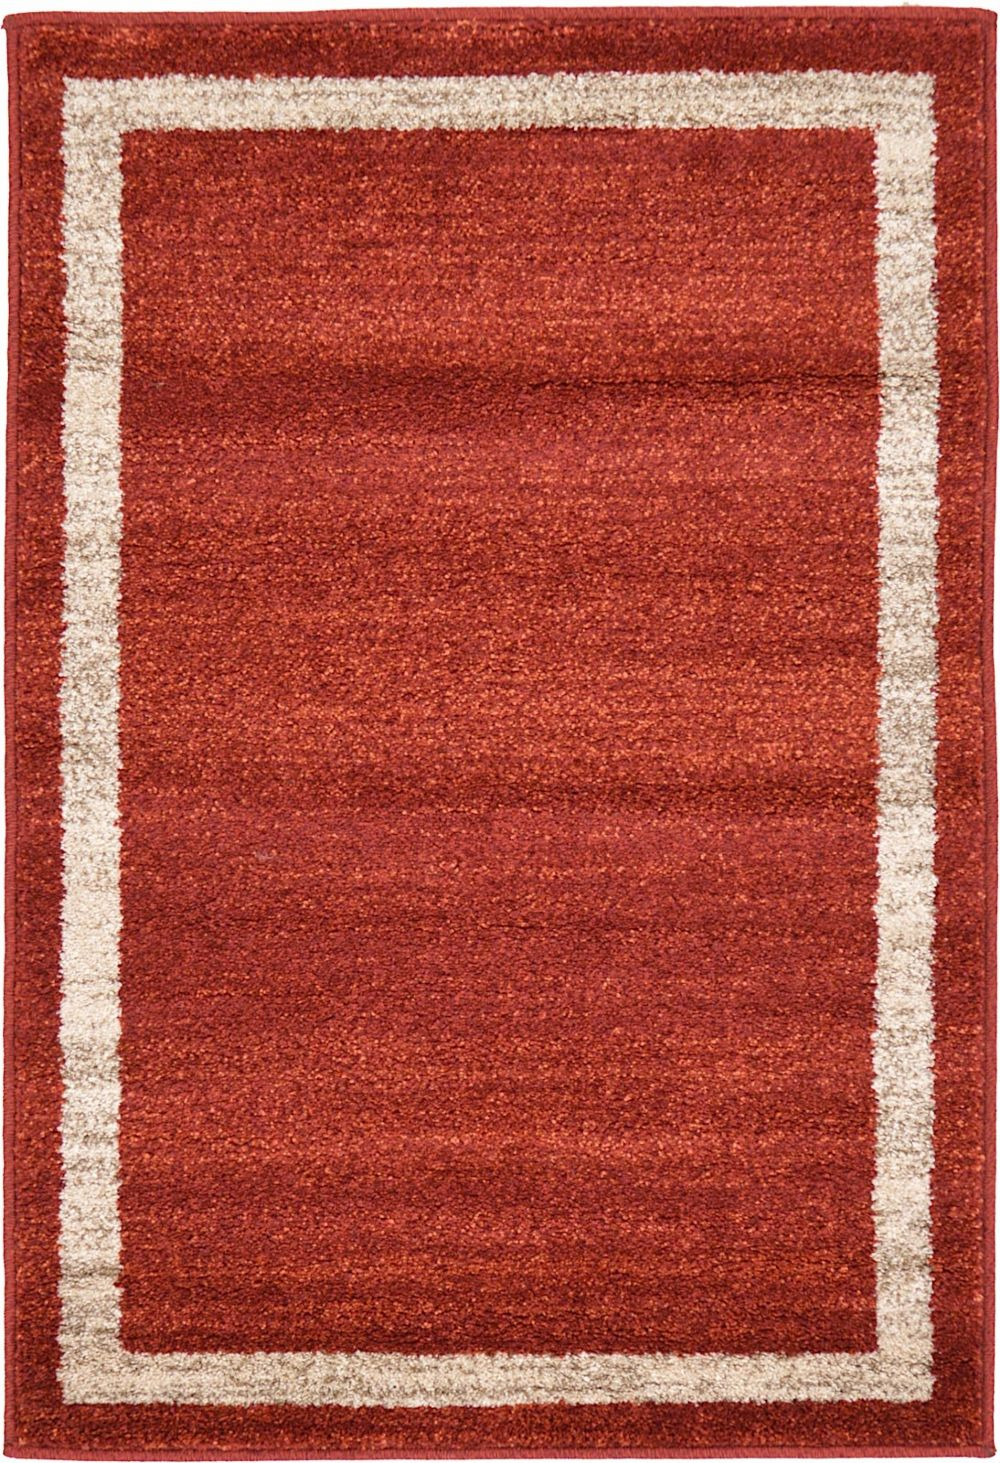 rugpal desdemona contemporary area rug collection